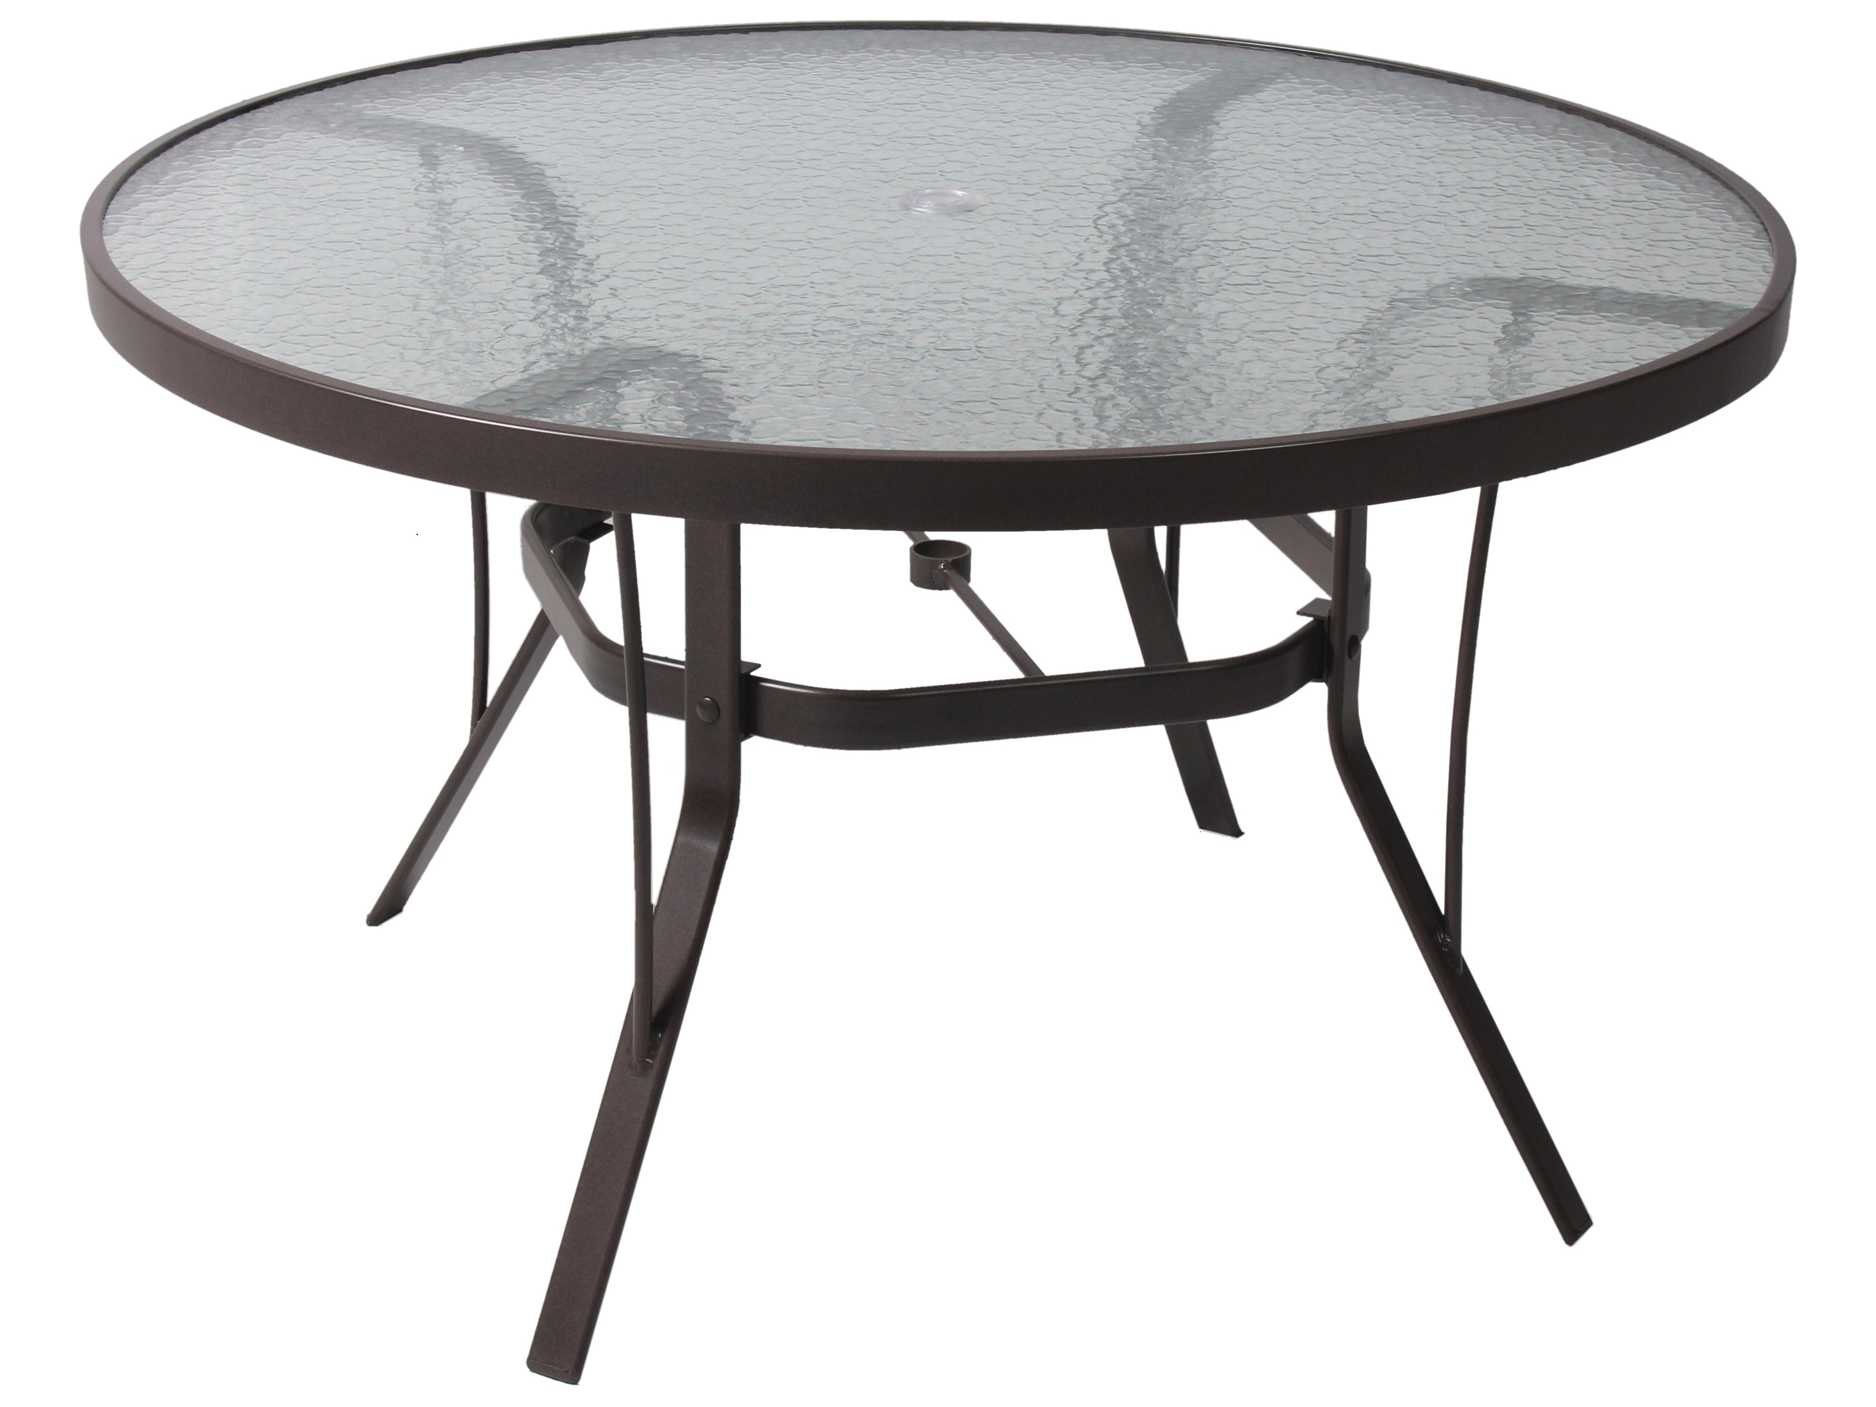 suncoast cast aluminum 48 39 39 round glass top dining table 48kd. Black Bedroom Furniture Sets. Home Design Ideas